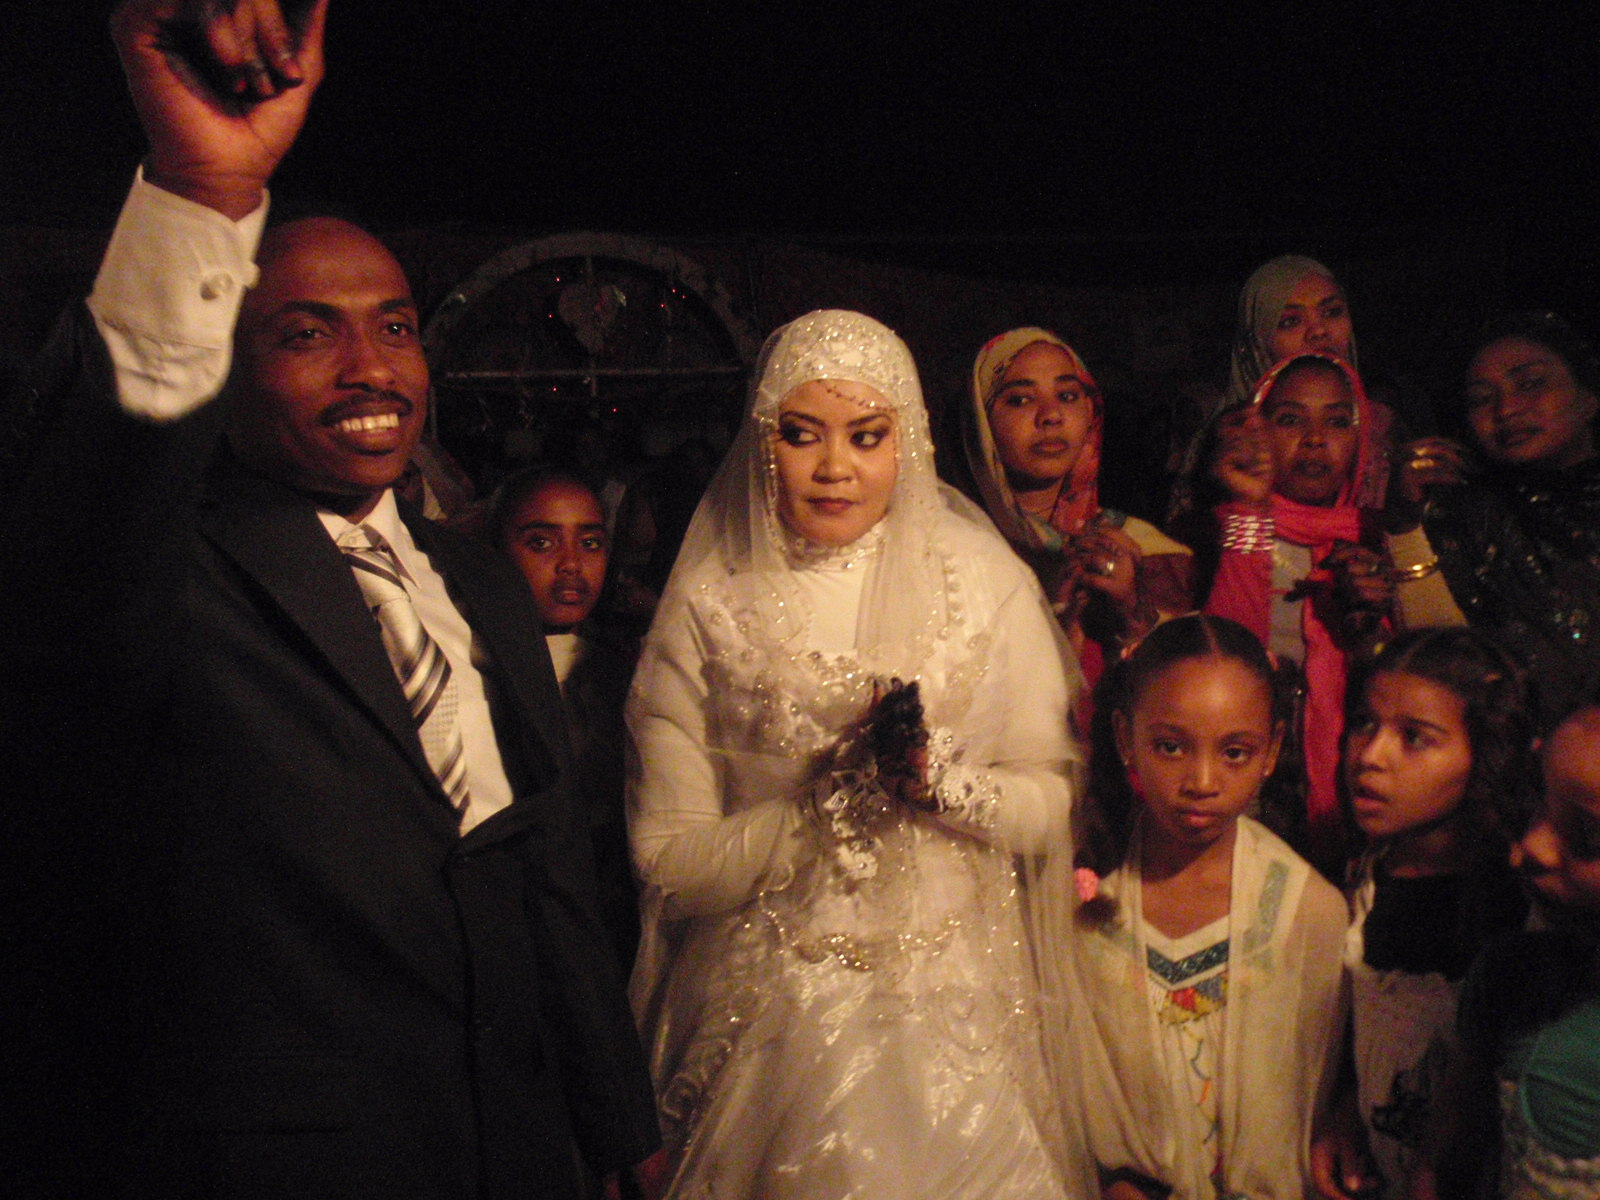 Sudanese wedding rituals and traditions - She Keeps The Relationship A Secret From Her Own Family And Constantly Worries About The Future Of Their Relationship